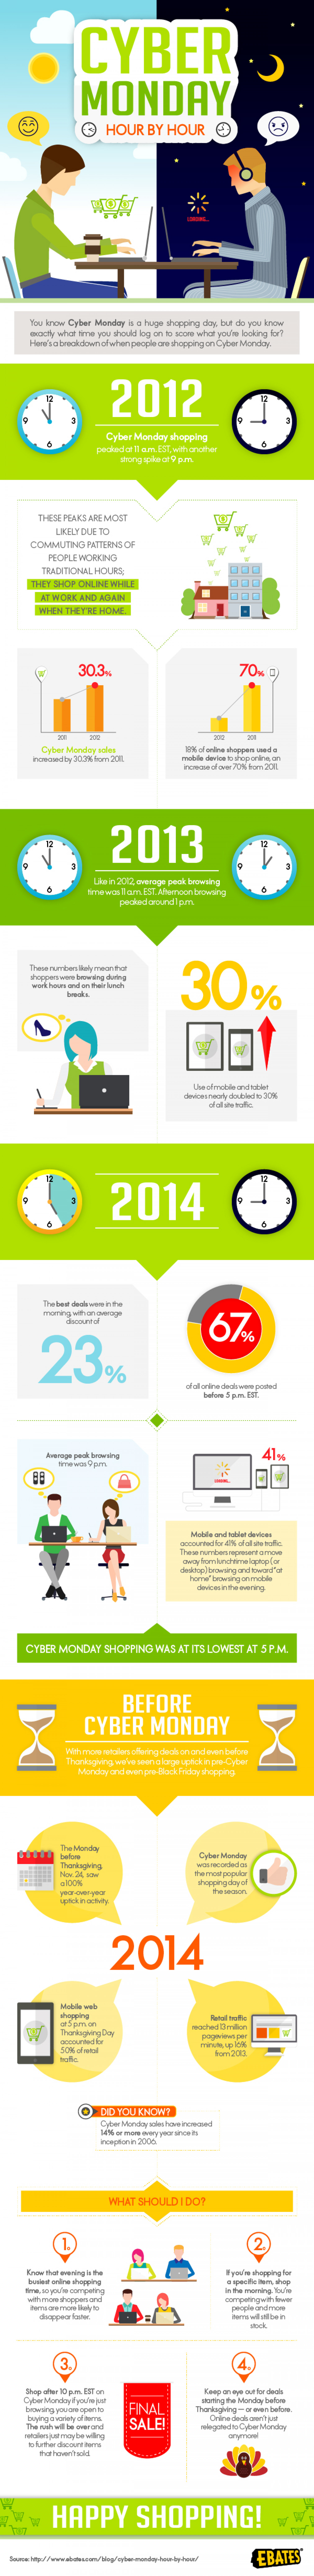 The Ultimate, Hour by Hour Guide to Cyber Monday Infographic